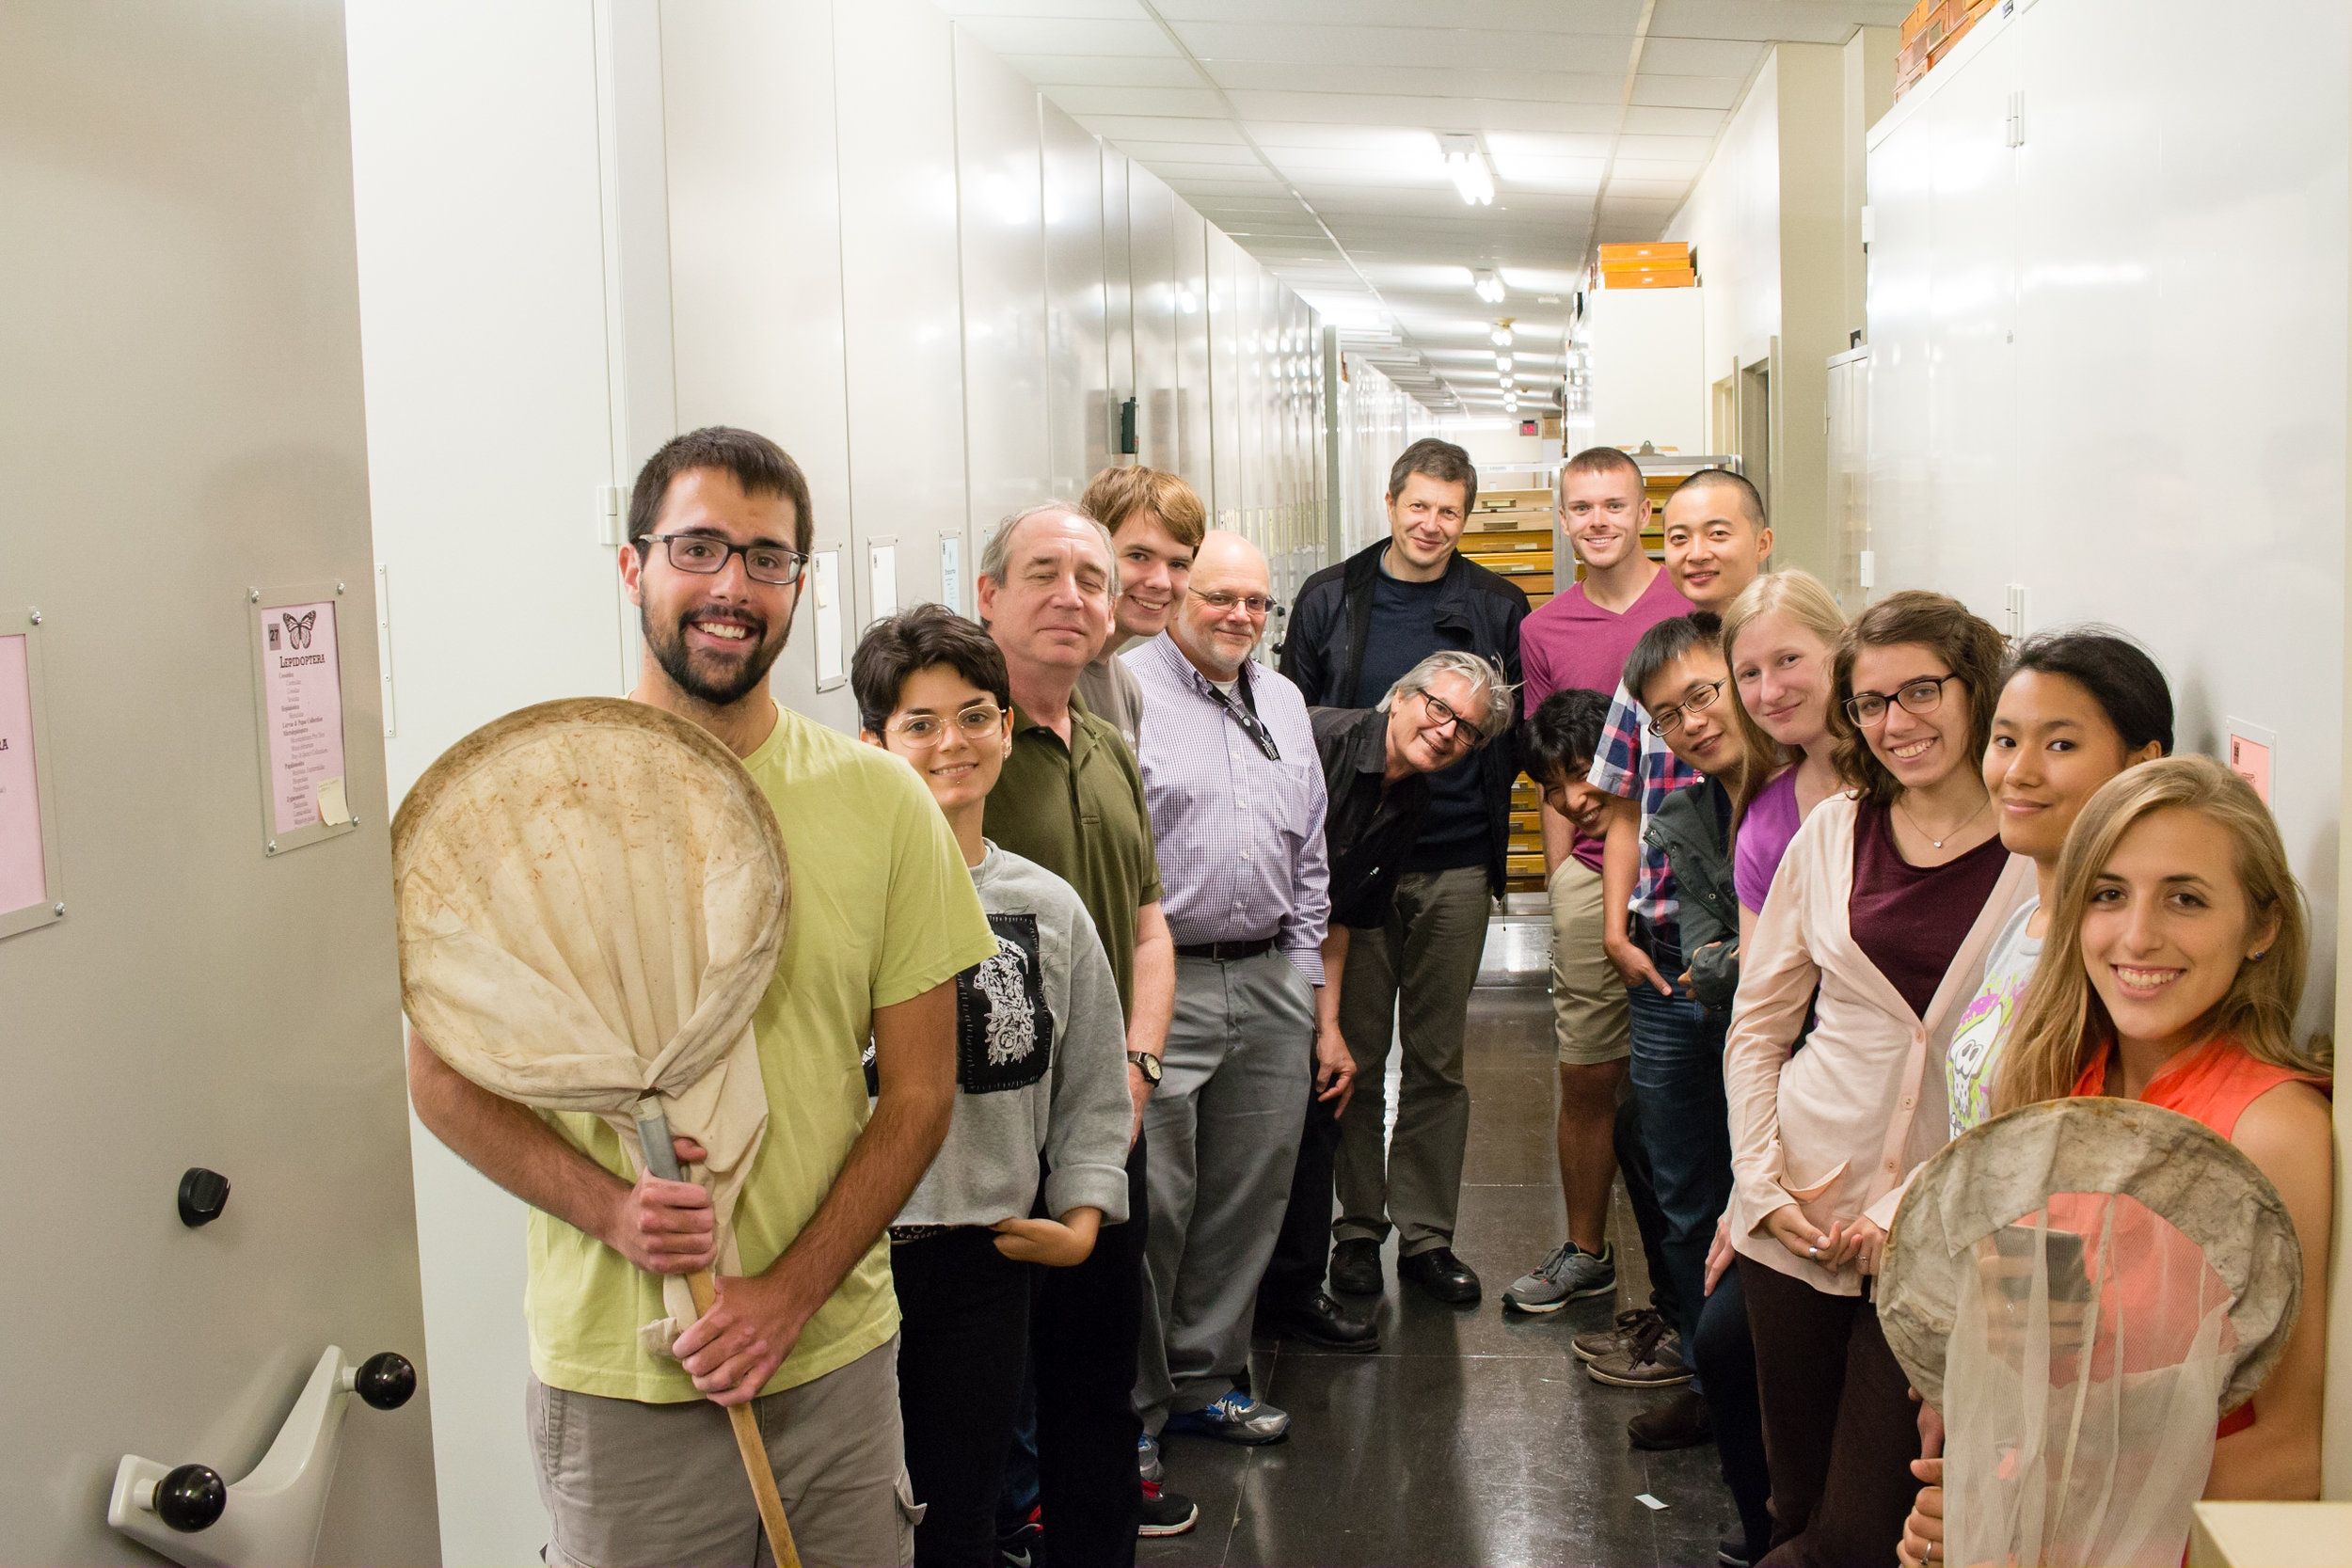 The Academy of Natural Sciences Entomology Community (2017), the group includes a curator, collection manager, curatorial assistants, visiting scholars, visiting PhD students, undergraduate student interns, and volunteers. On either side of the group are cabinets that contain drawers upon drawers of insect research specimens.